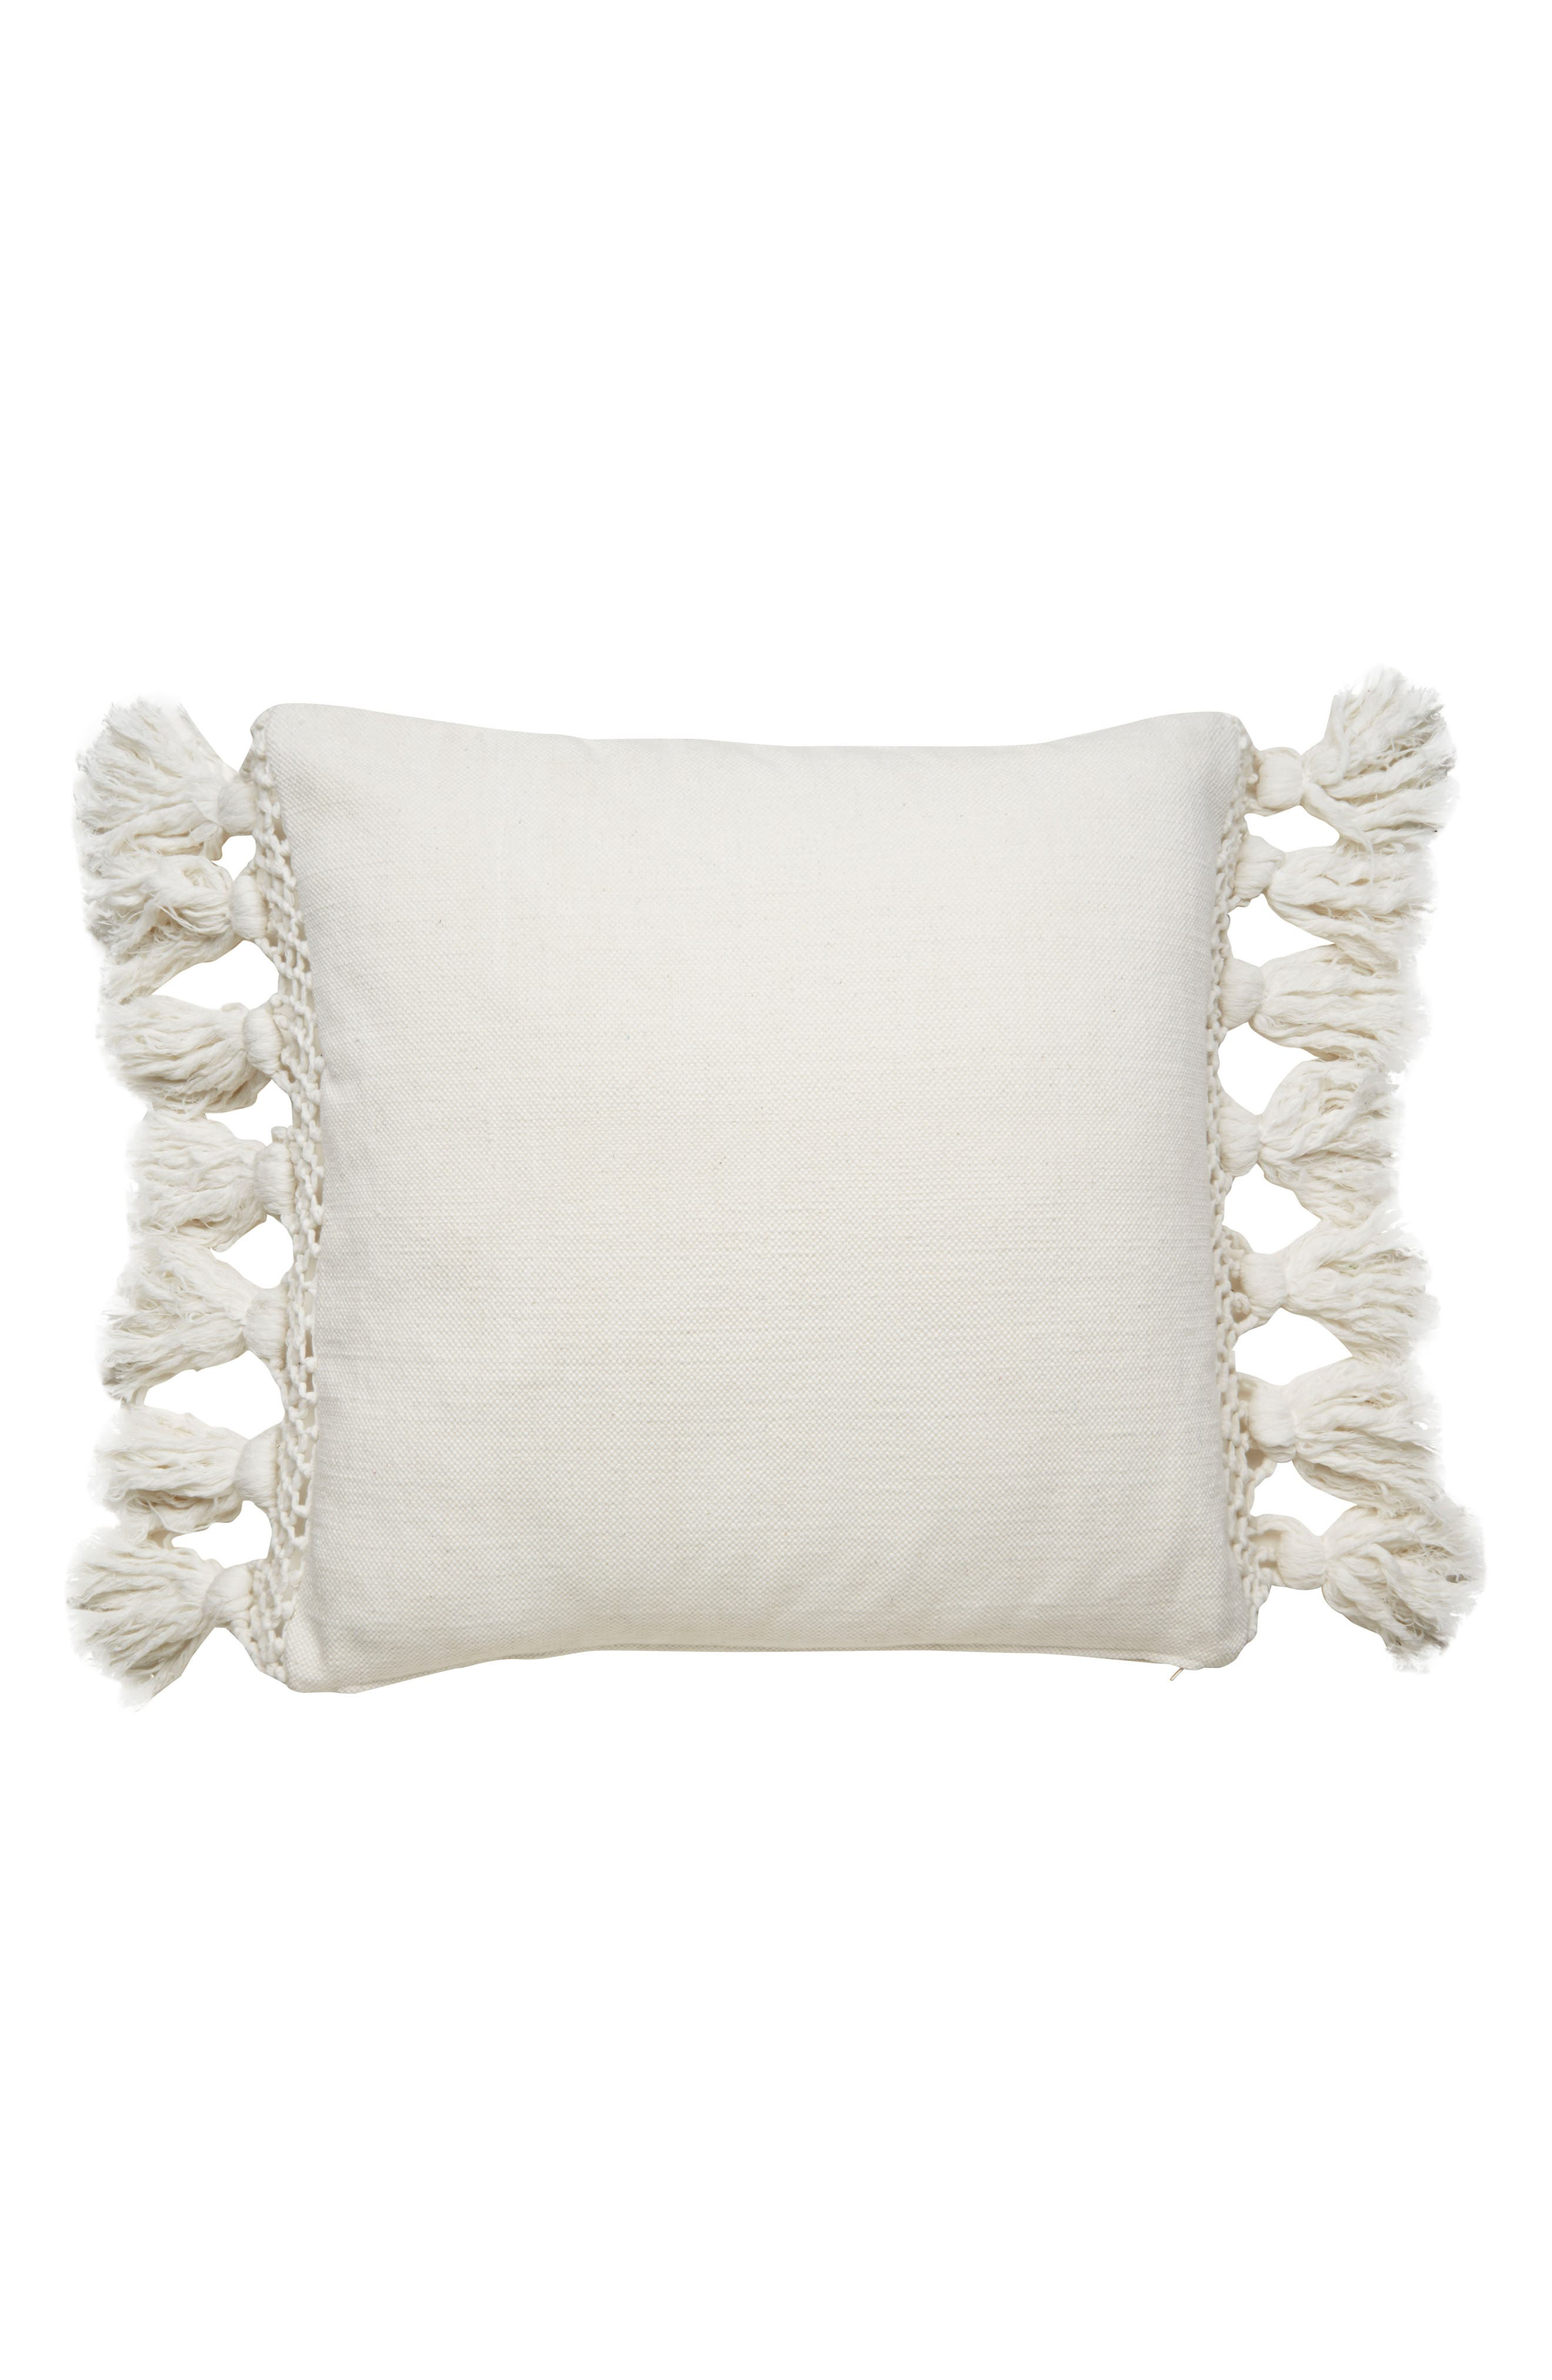 KATE SPADE NEW YORK tassel accent pillow, Main, color, 100